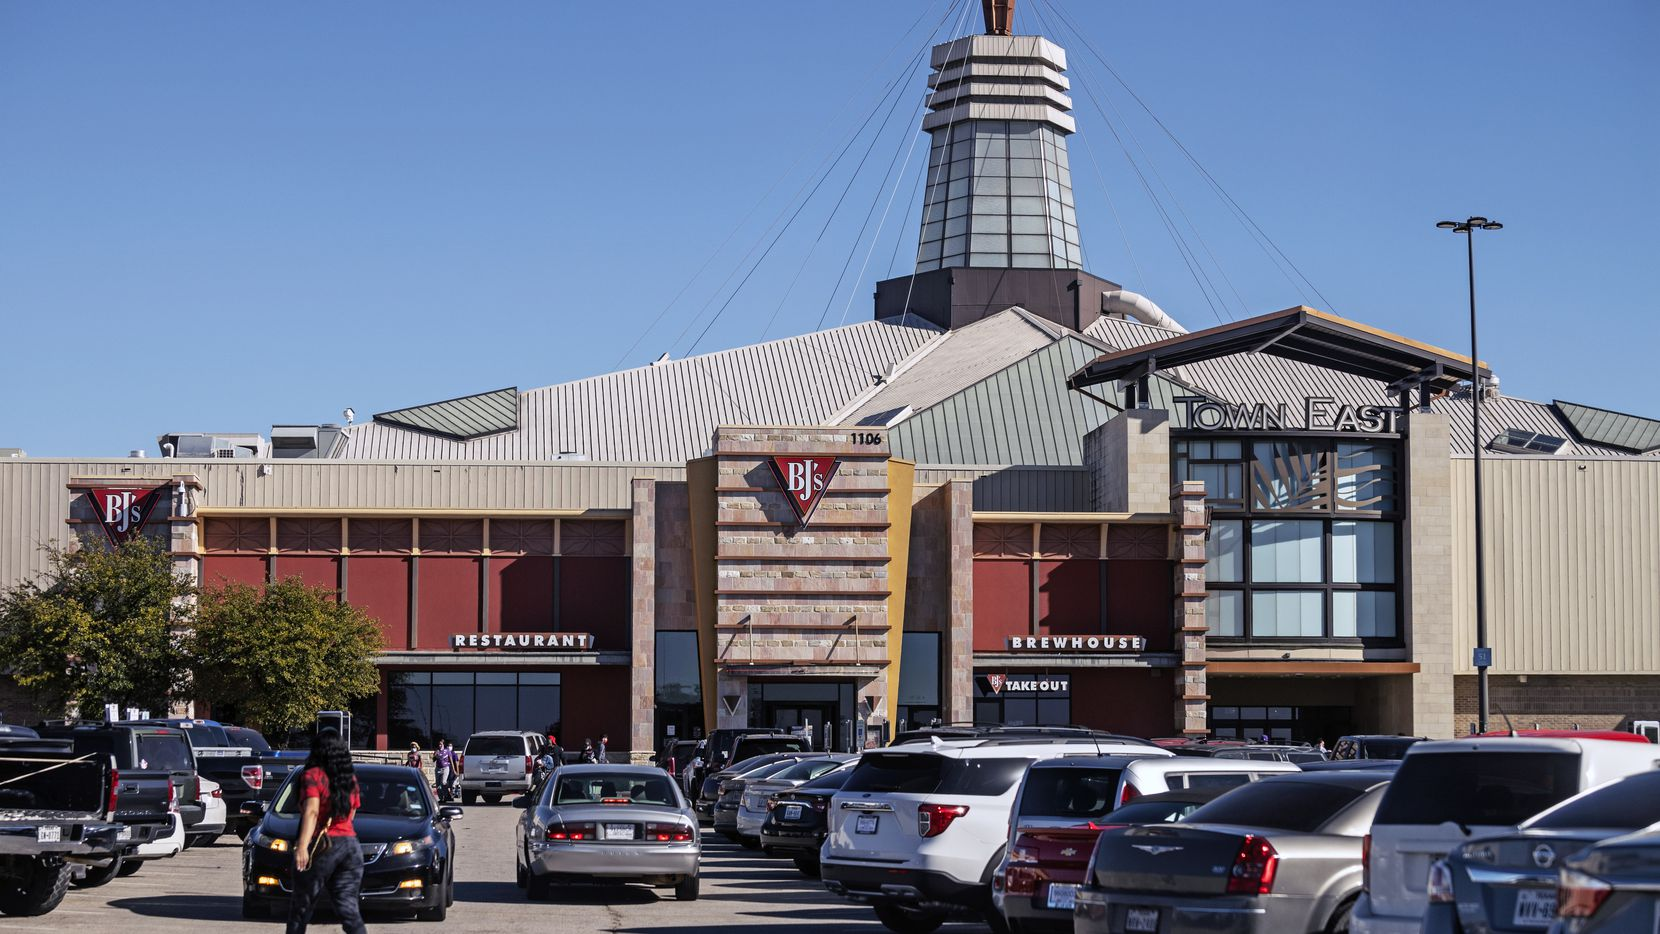 The main entrance to Town East Mall in Mesquite near the BJ'S restaurant and brewhouse the day after Christmas.